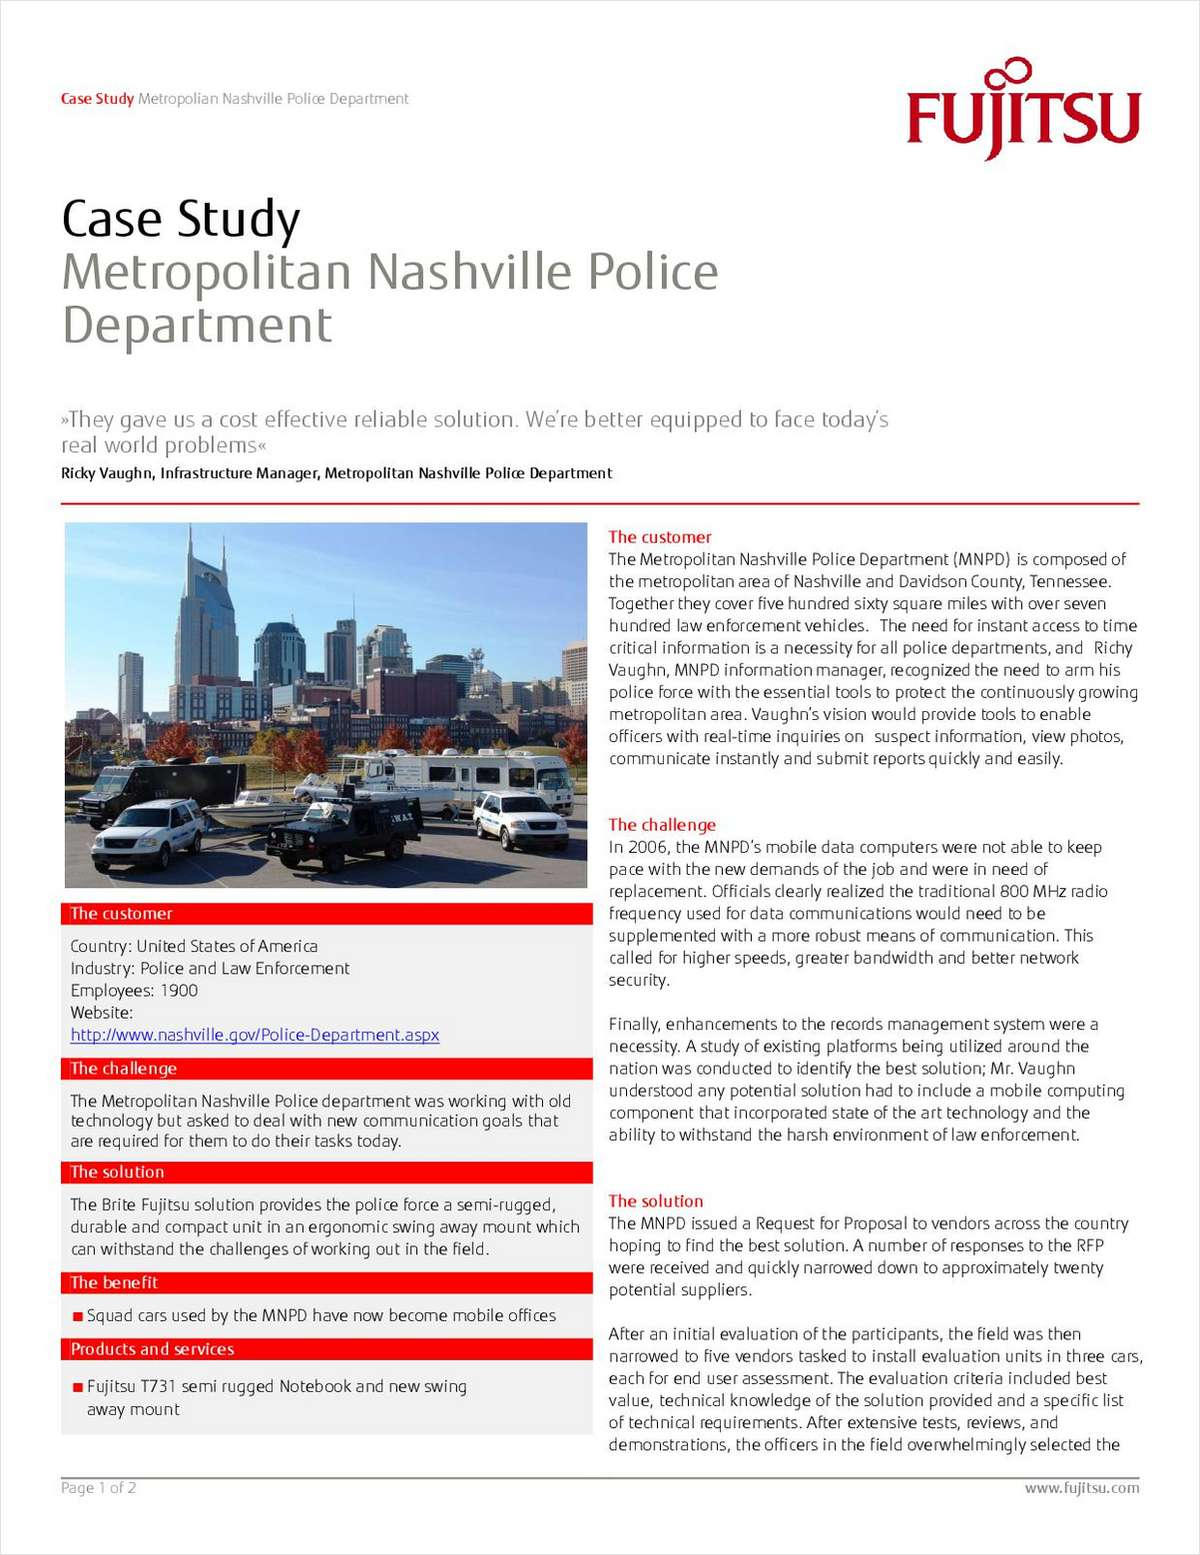 Real-Time Mission-Critical Information and Law Enforcement Mobility: Making Things Work When Failure Is Not an Option